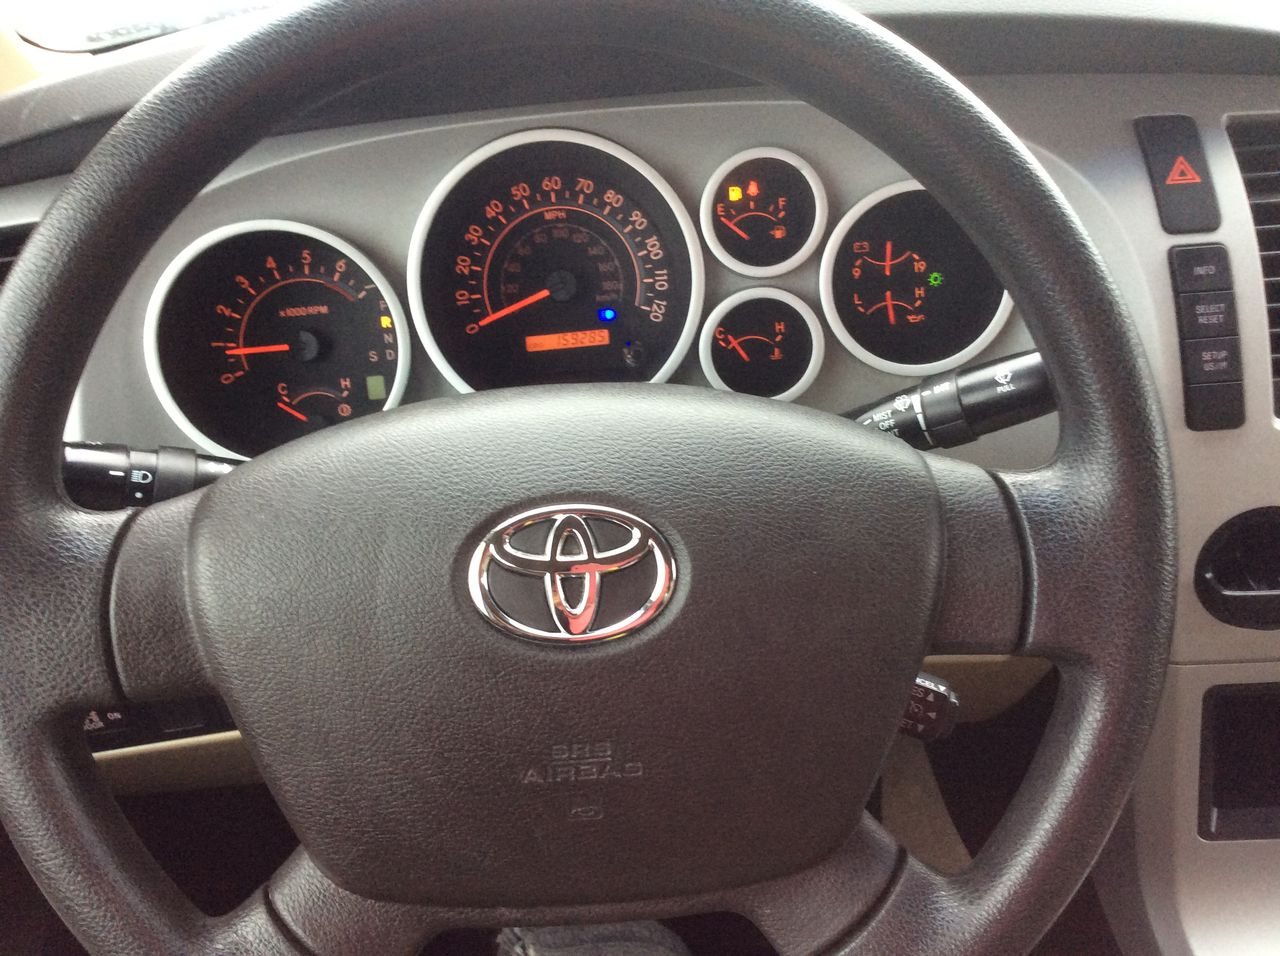 Used 2007 Toyota Tundra SR5 For Sale in Anchorage, Alaska